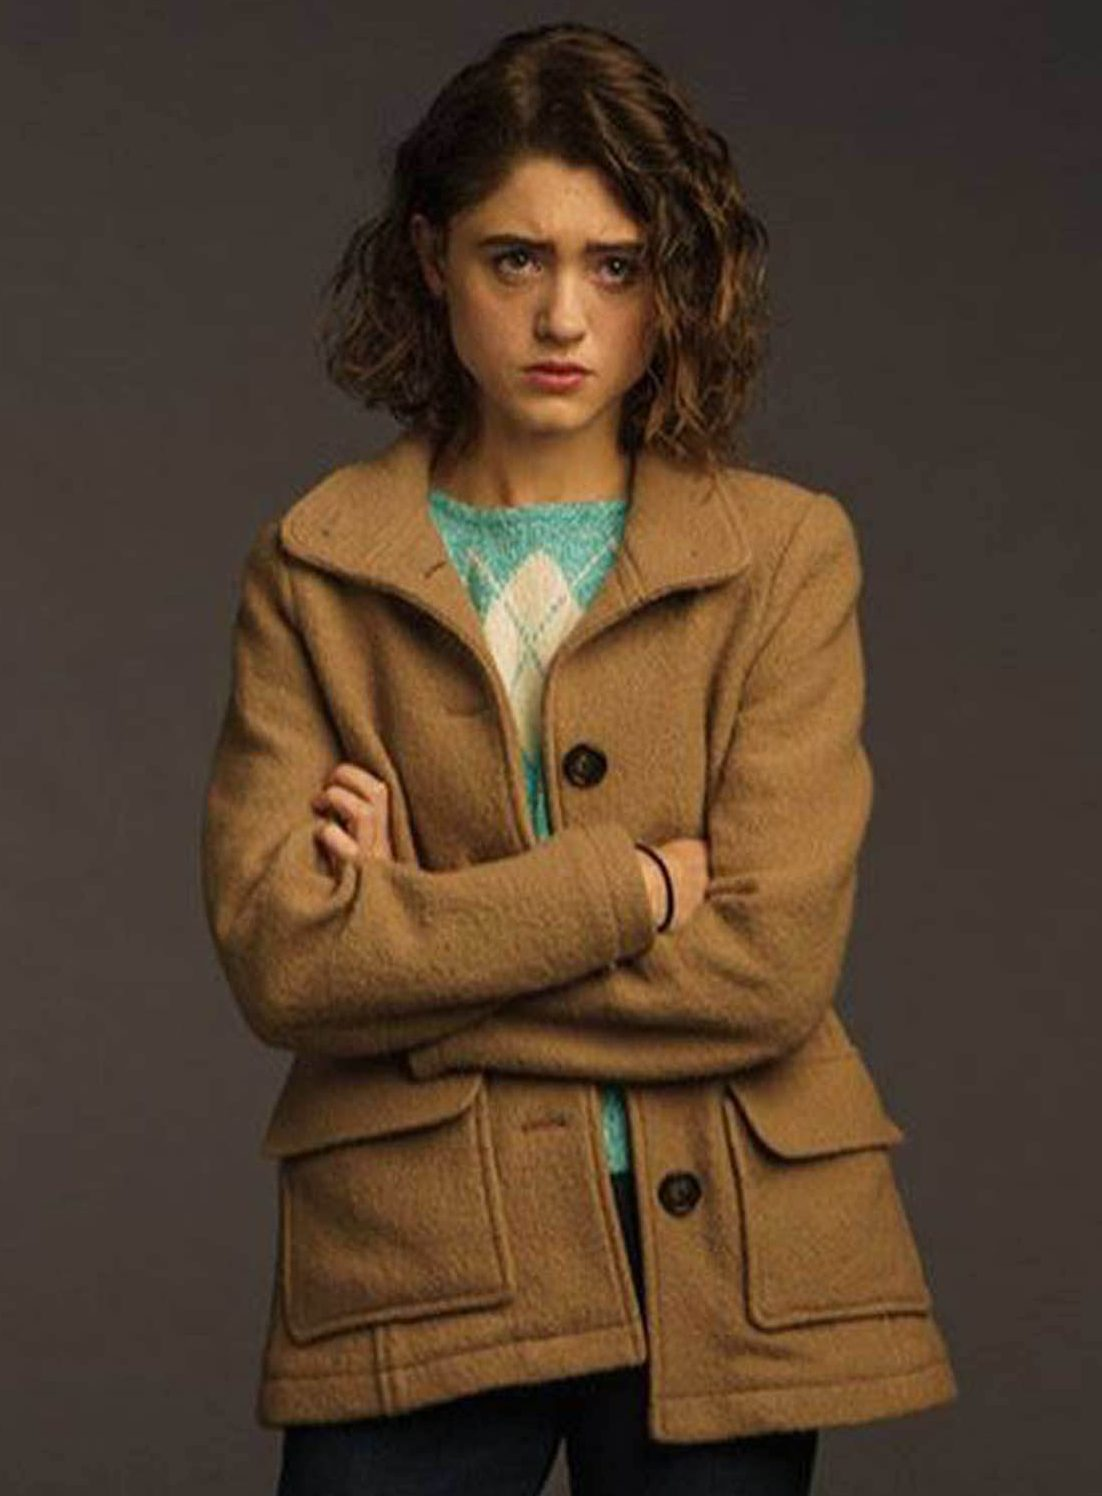 stranger 7 e1562318816116 20 Things You Never Knew About The Stranger Things Cast In Real Life